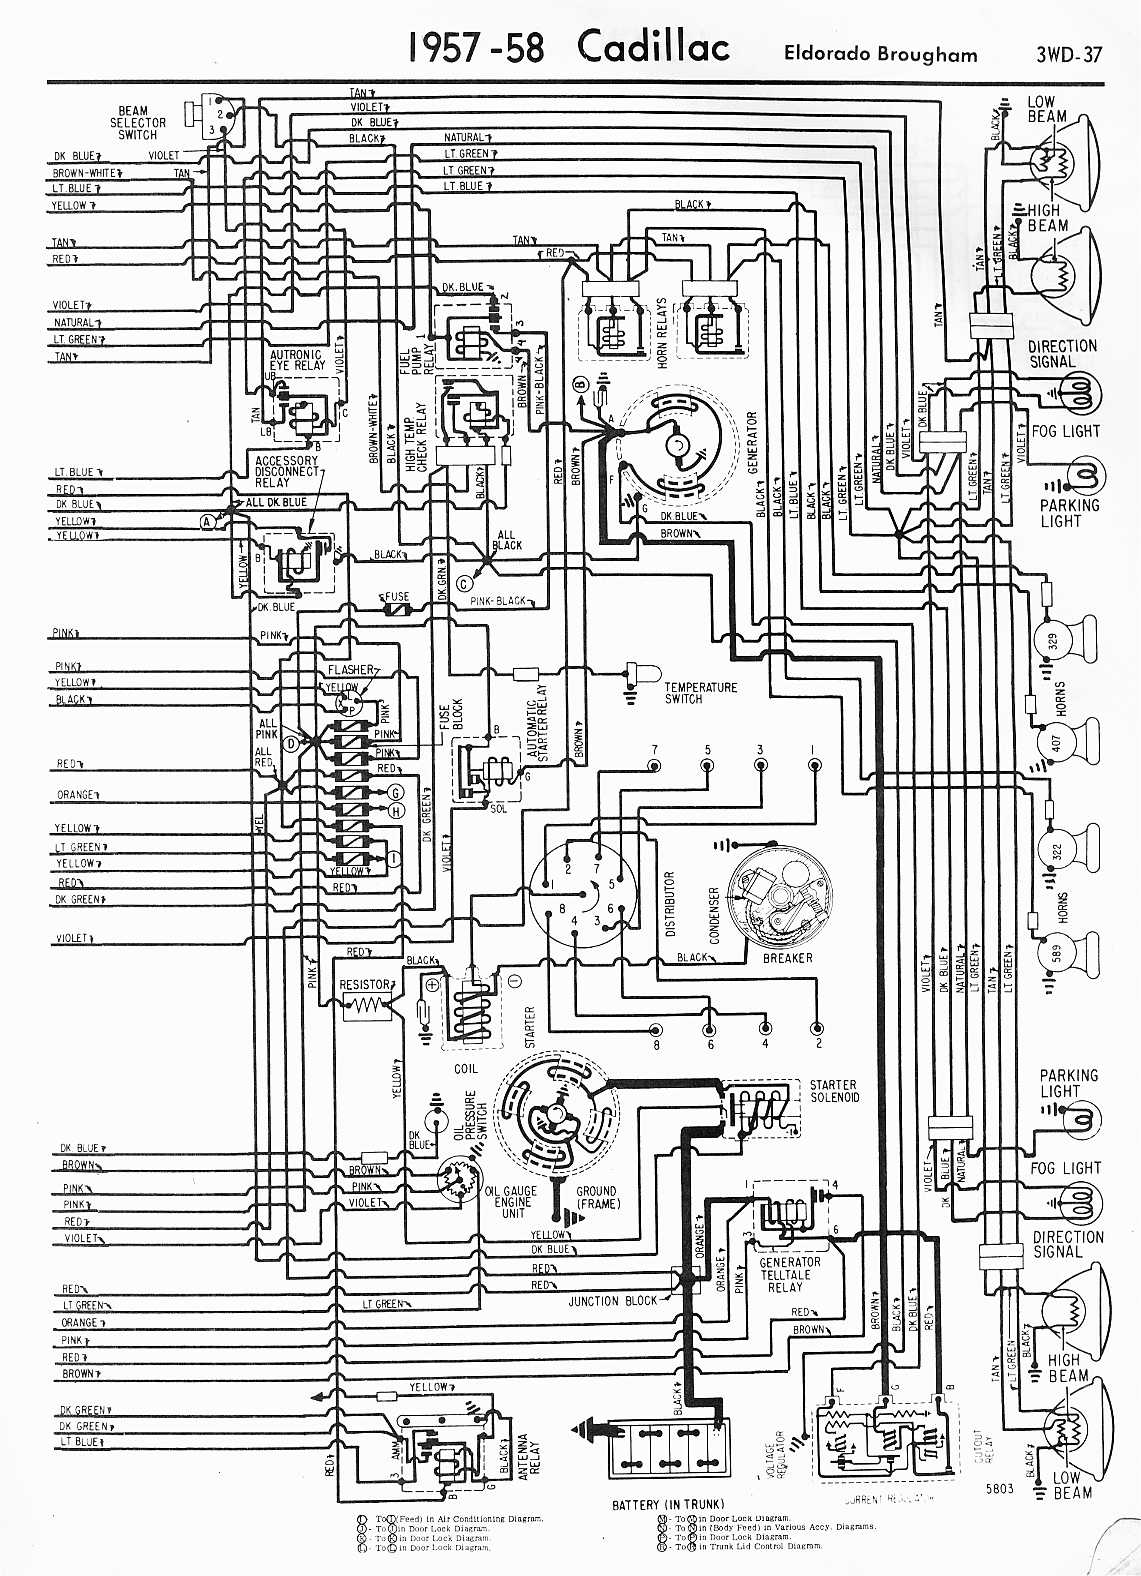 MWireCadi65_3WD 037 cadillac wiring diagrams 1957 1965 2001 cadillac deville wiring diagram at gsmx.co